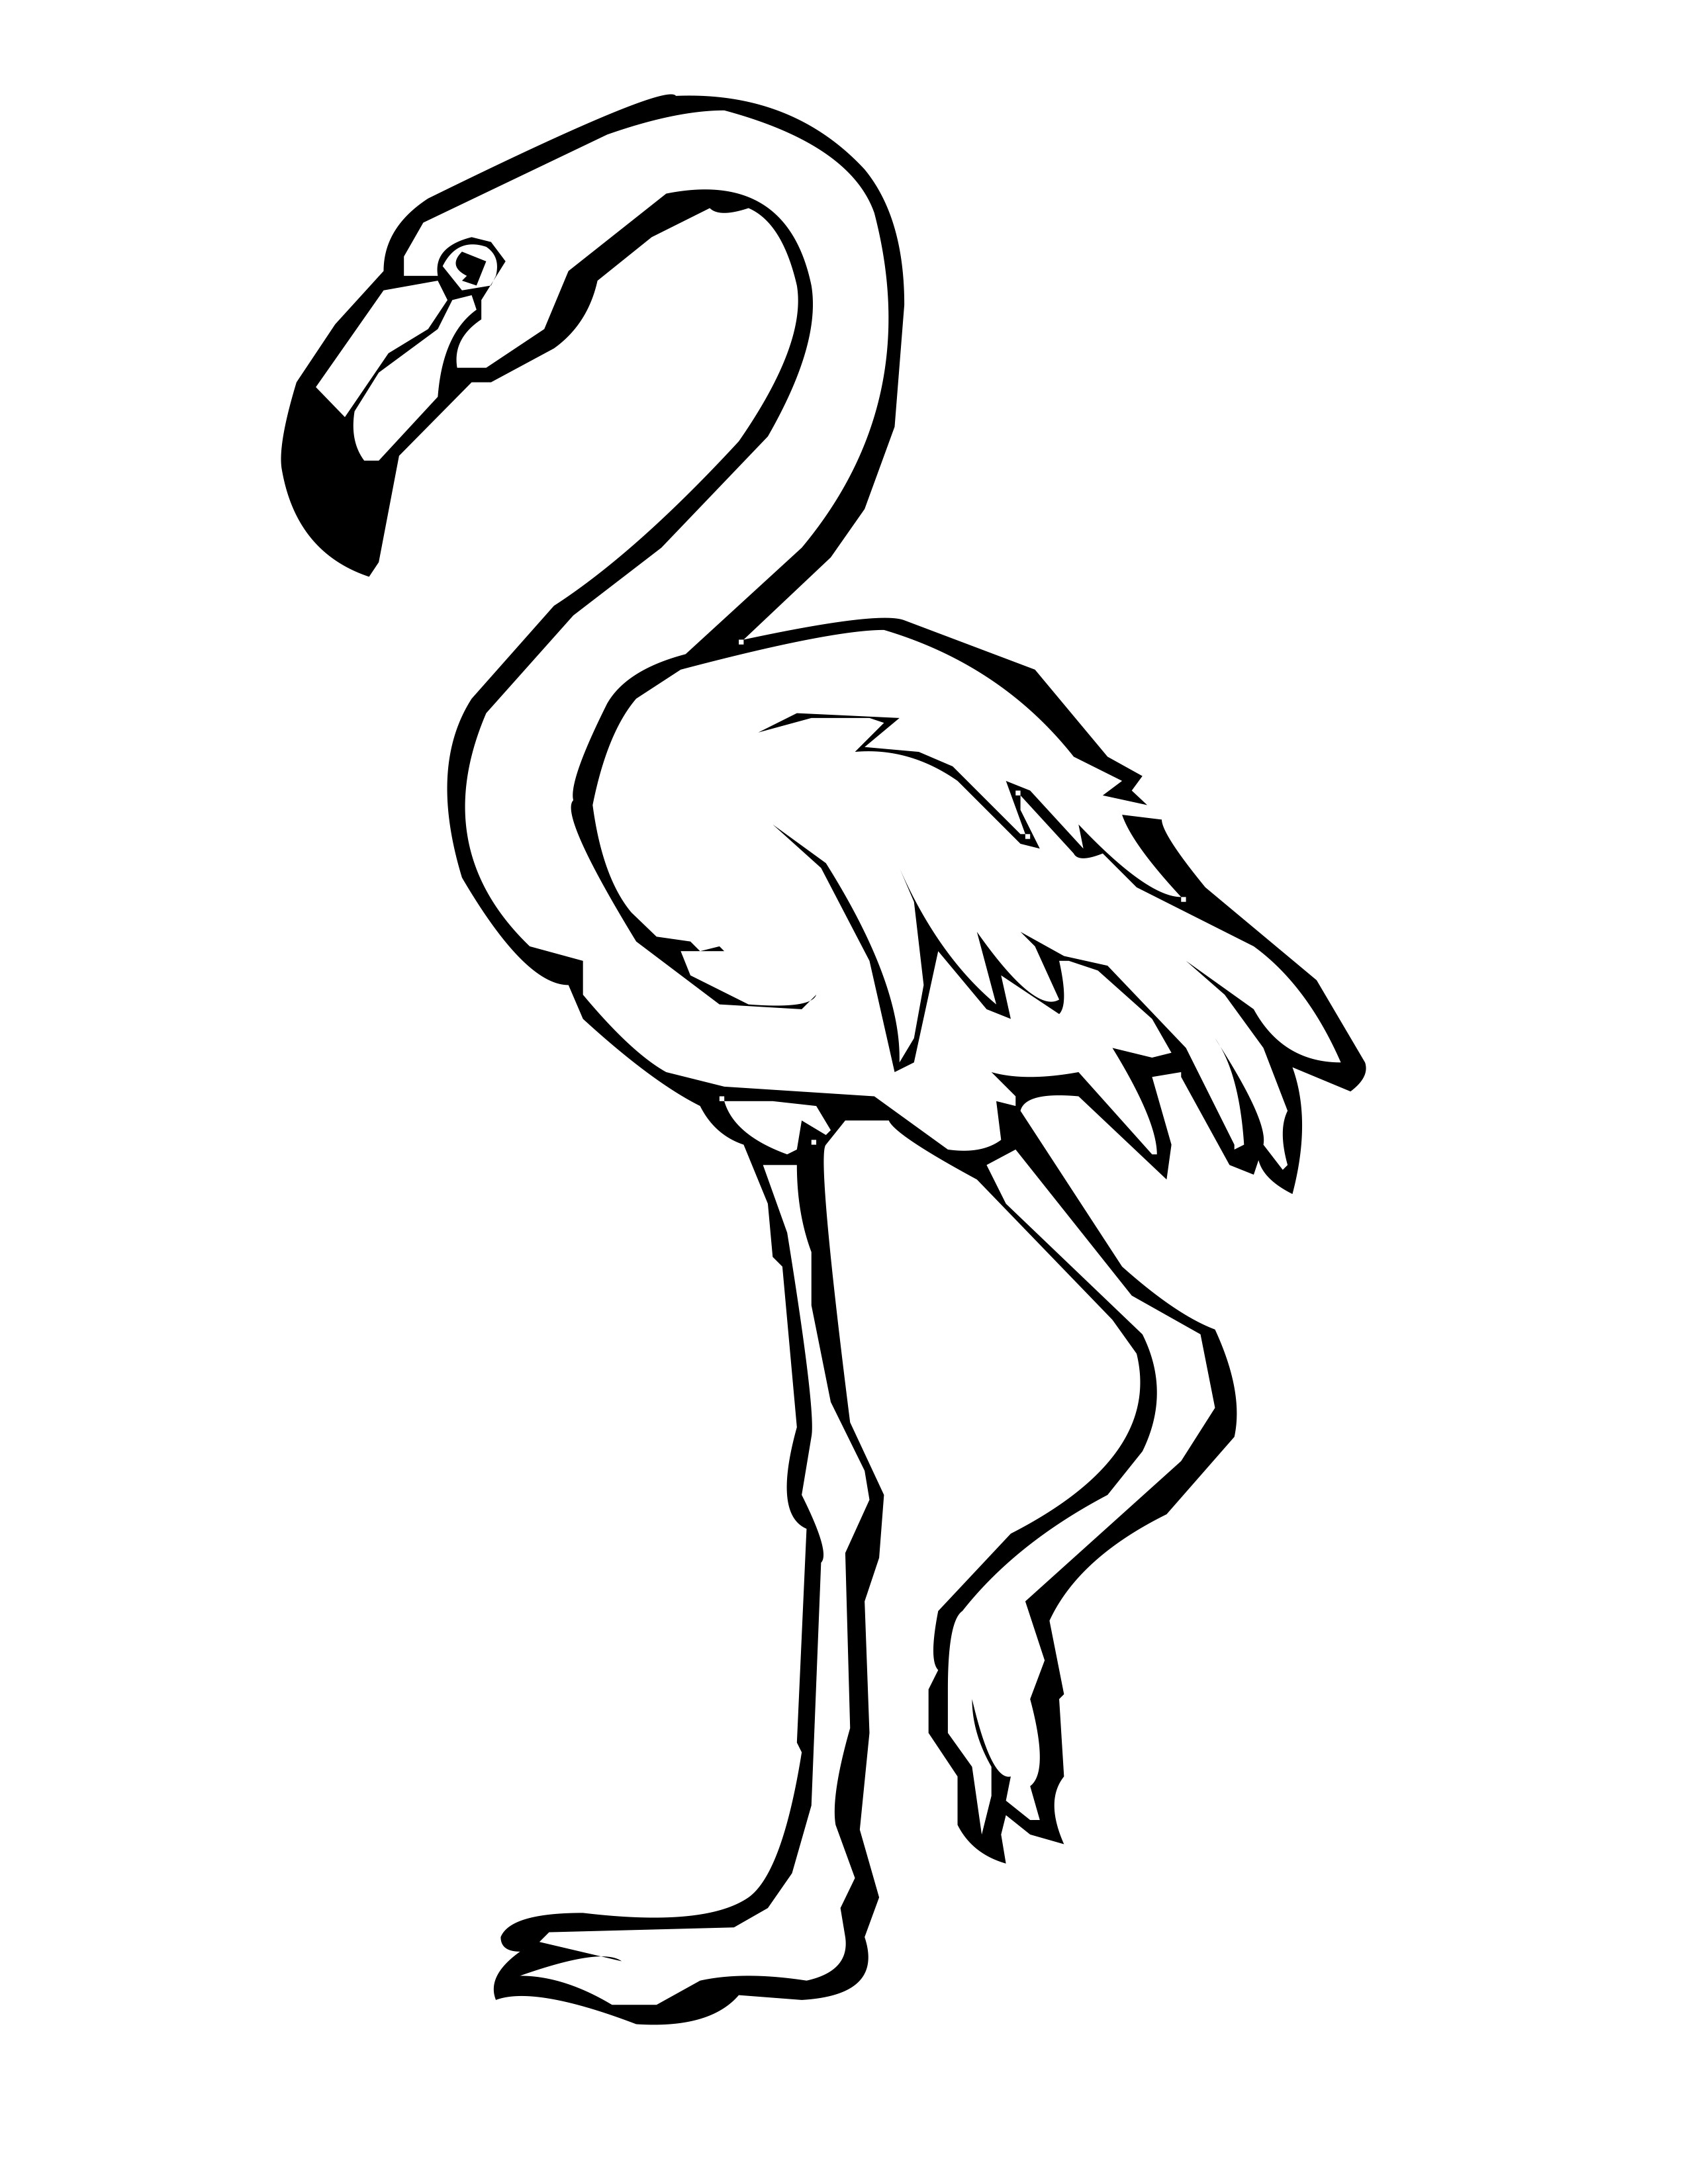 Flamingo outline. Cute png black and